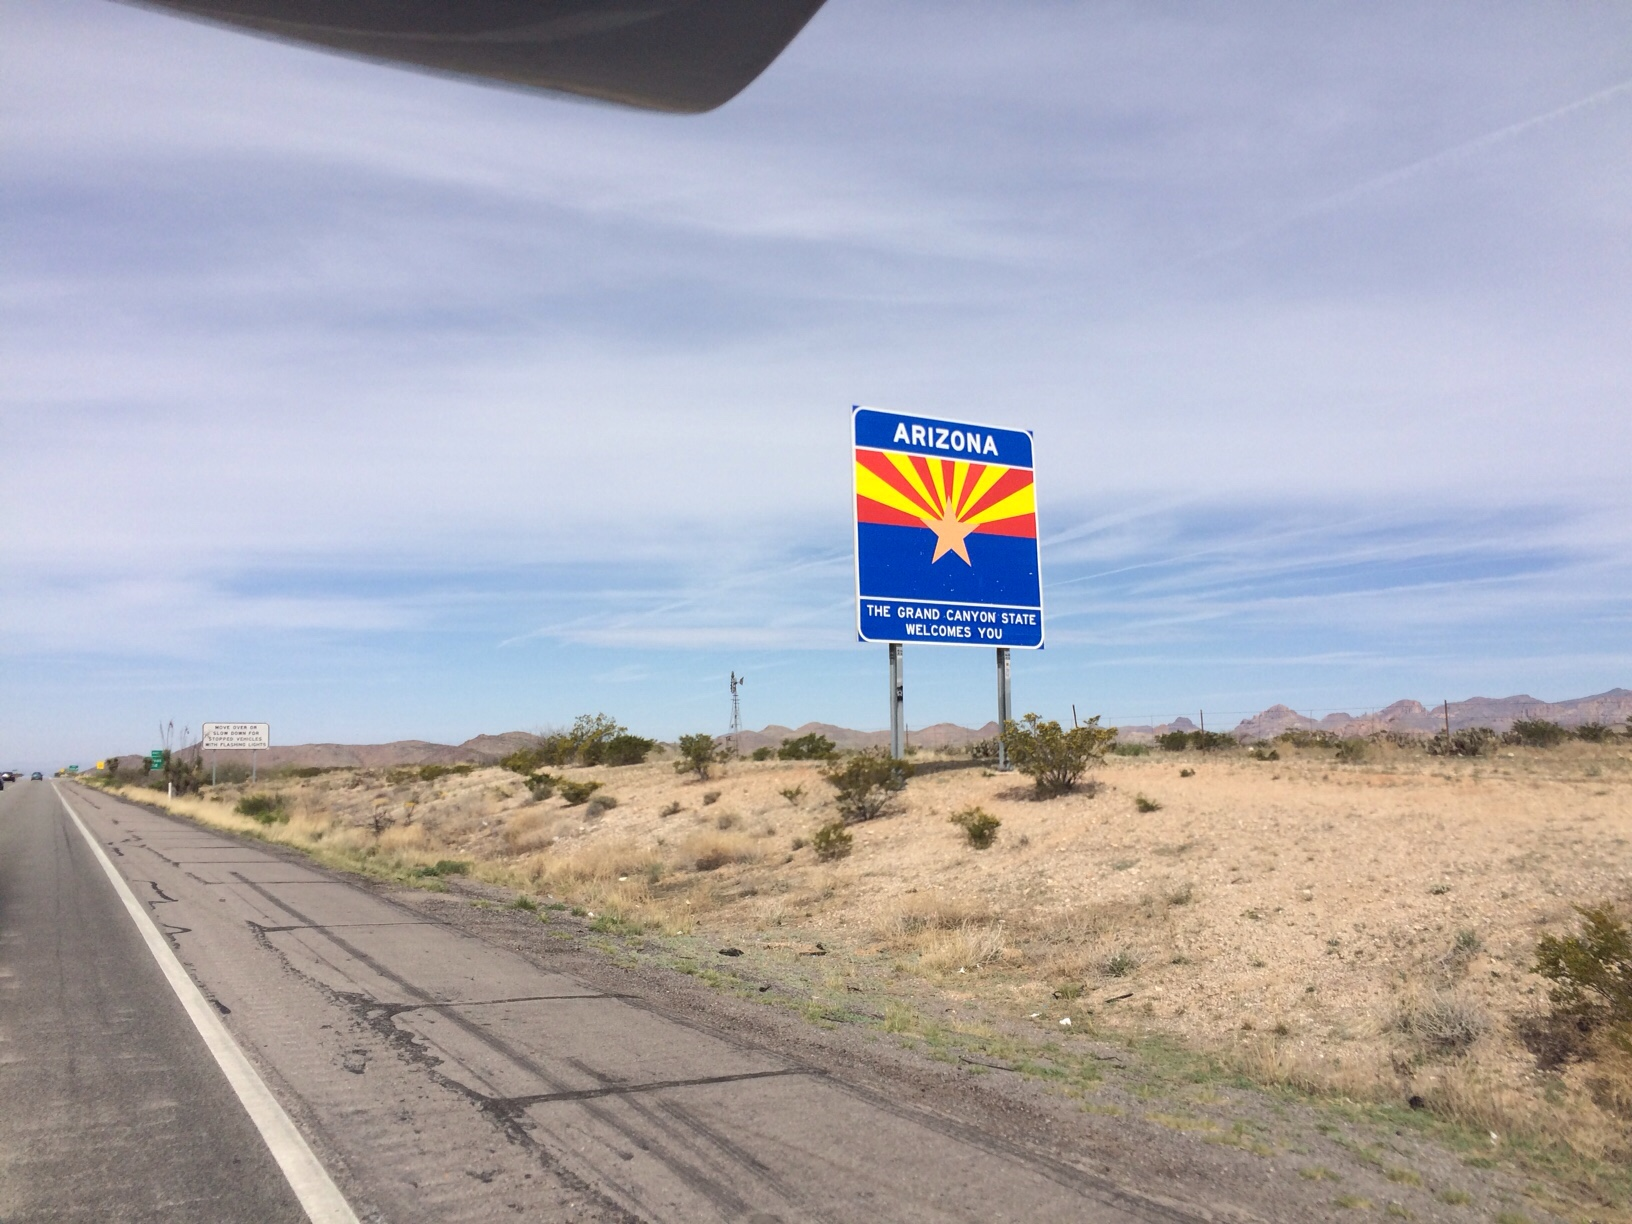 Road sign for Arizona